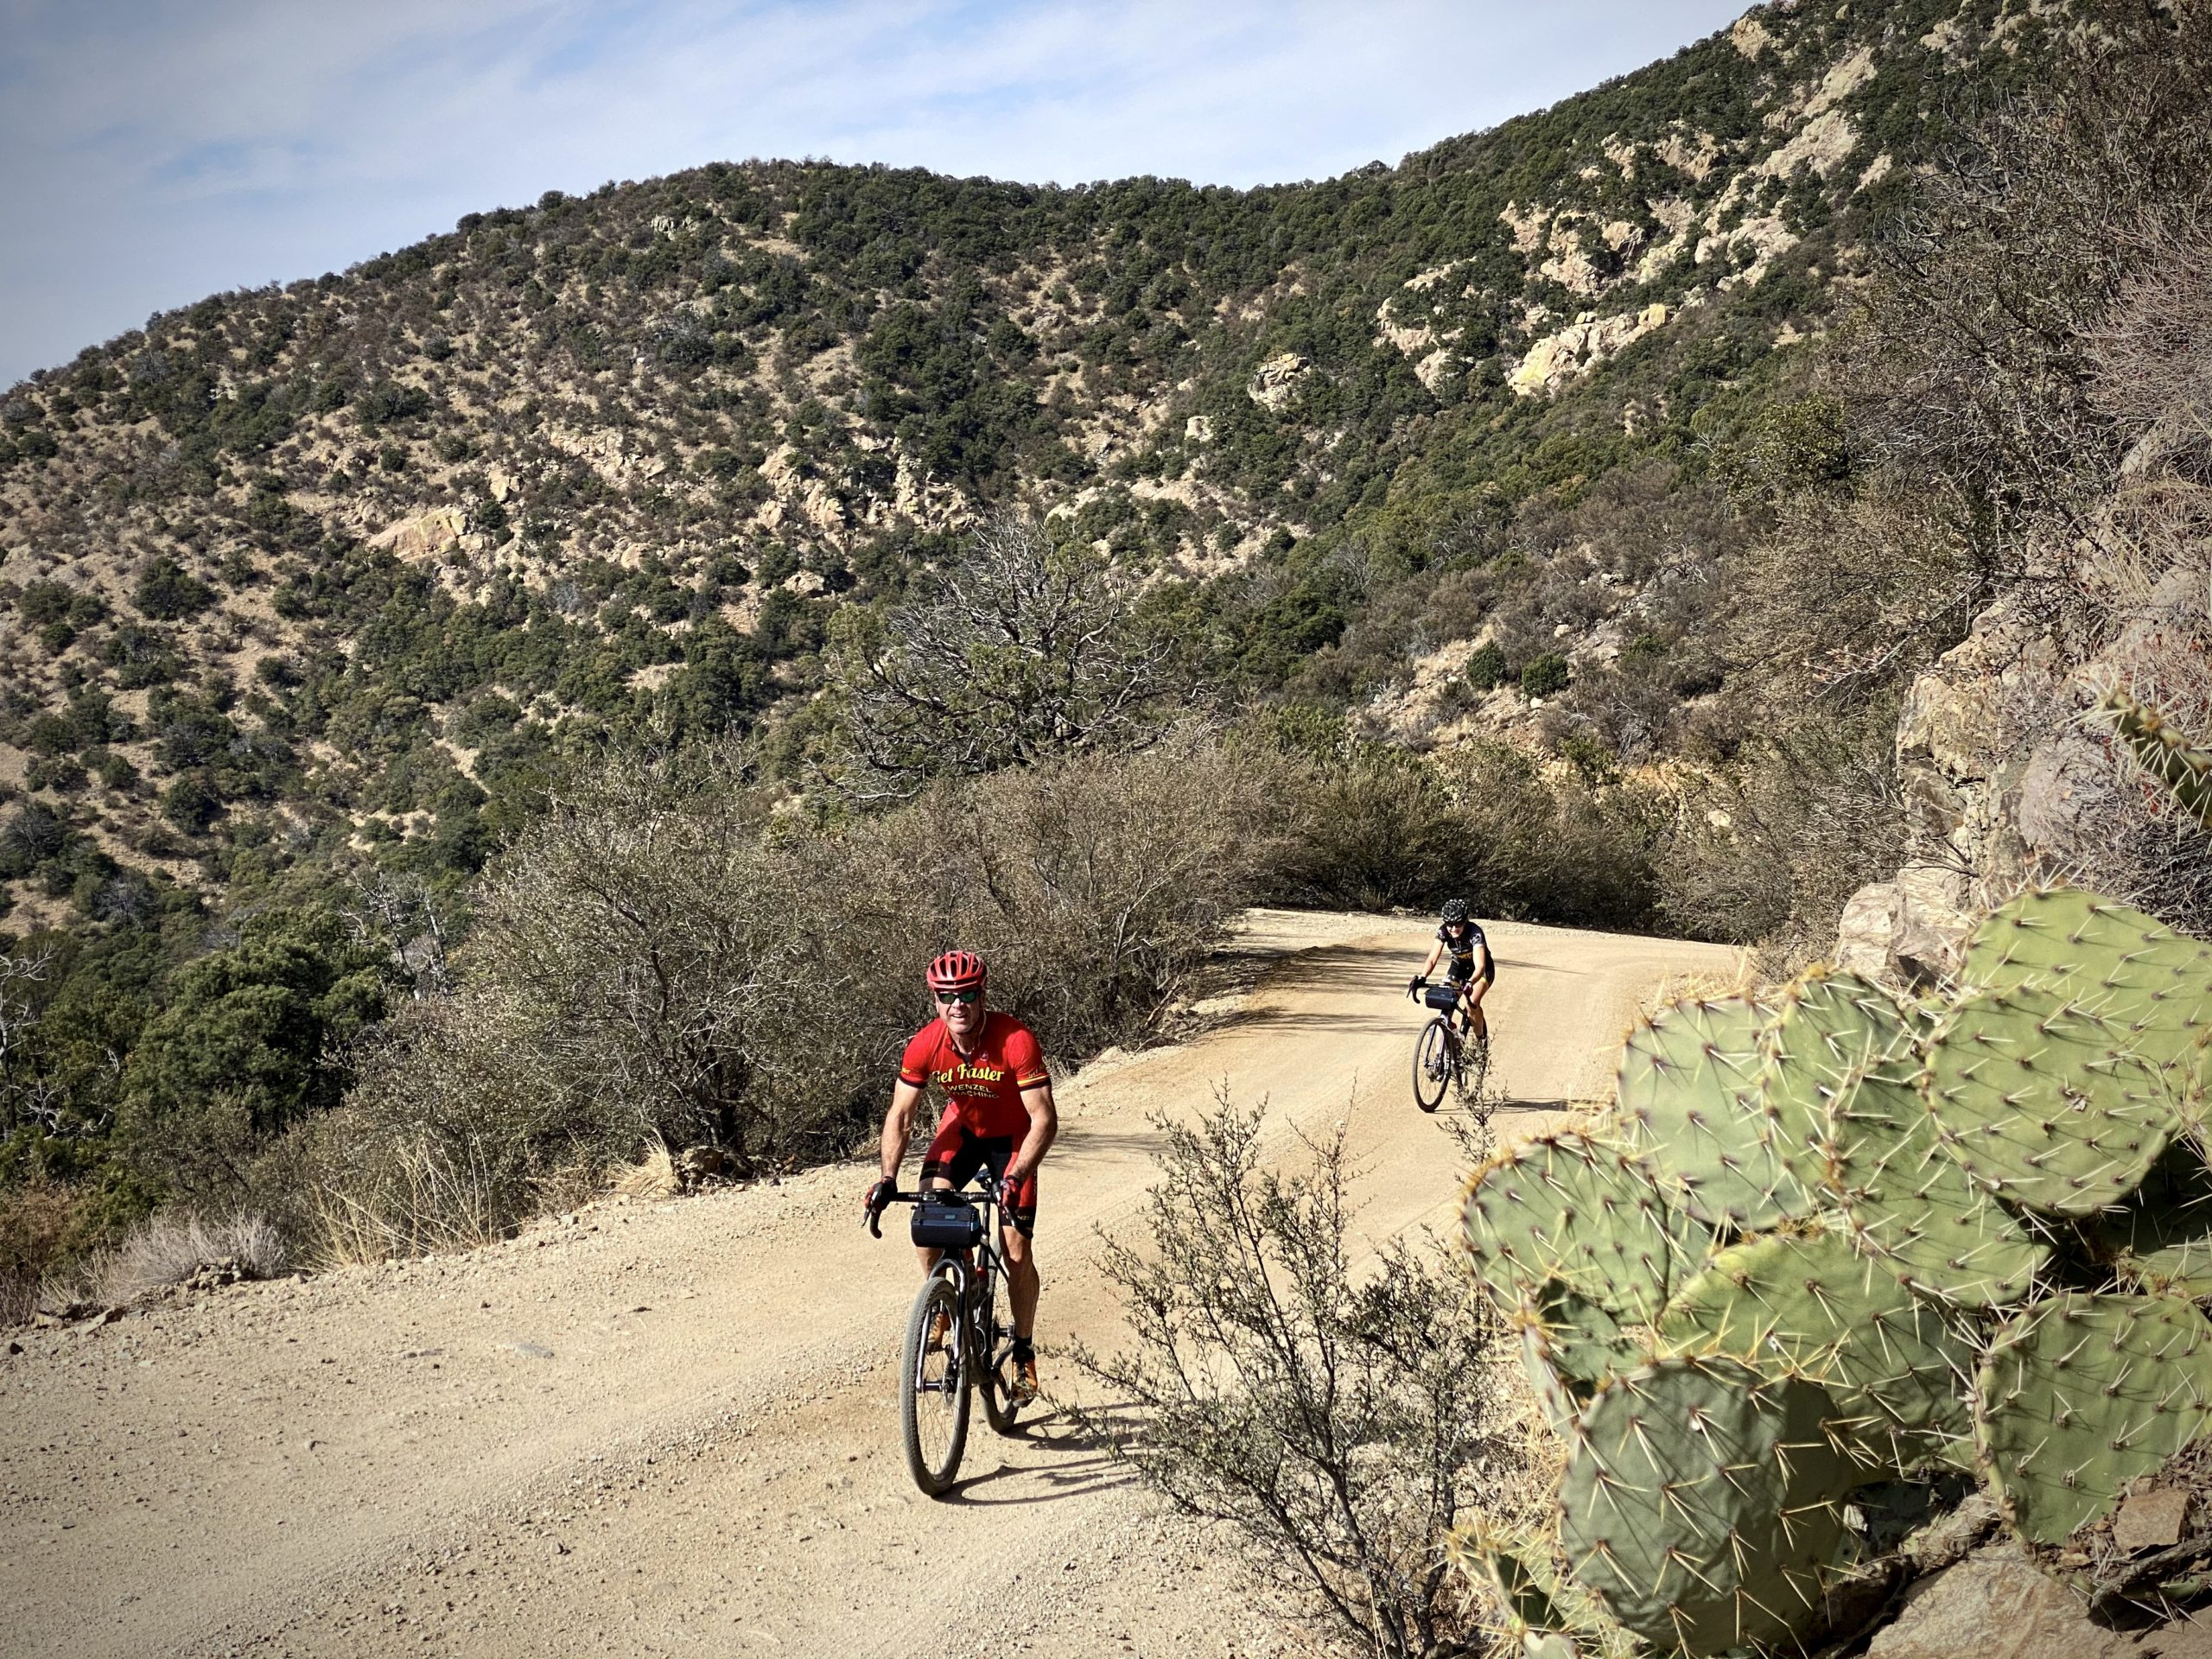 Two cyclists climbing up the gravel portion of Mt Hopkins road near Tucson, Arizona.